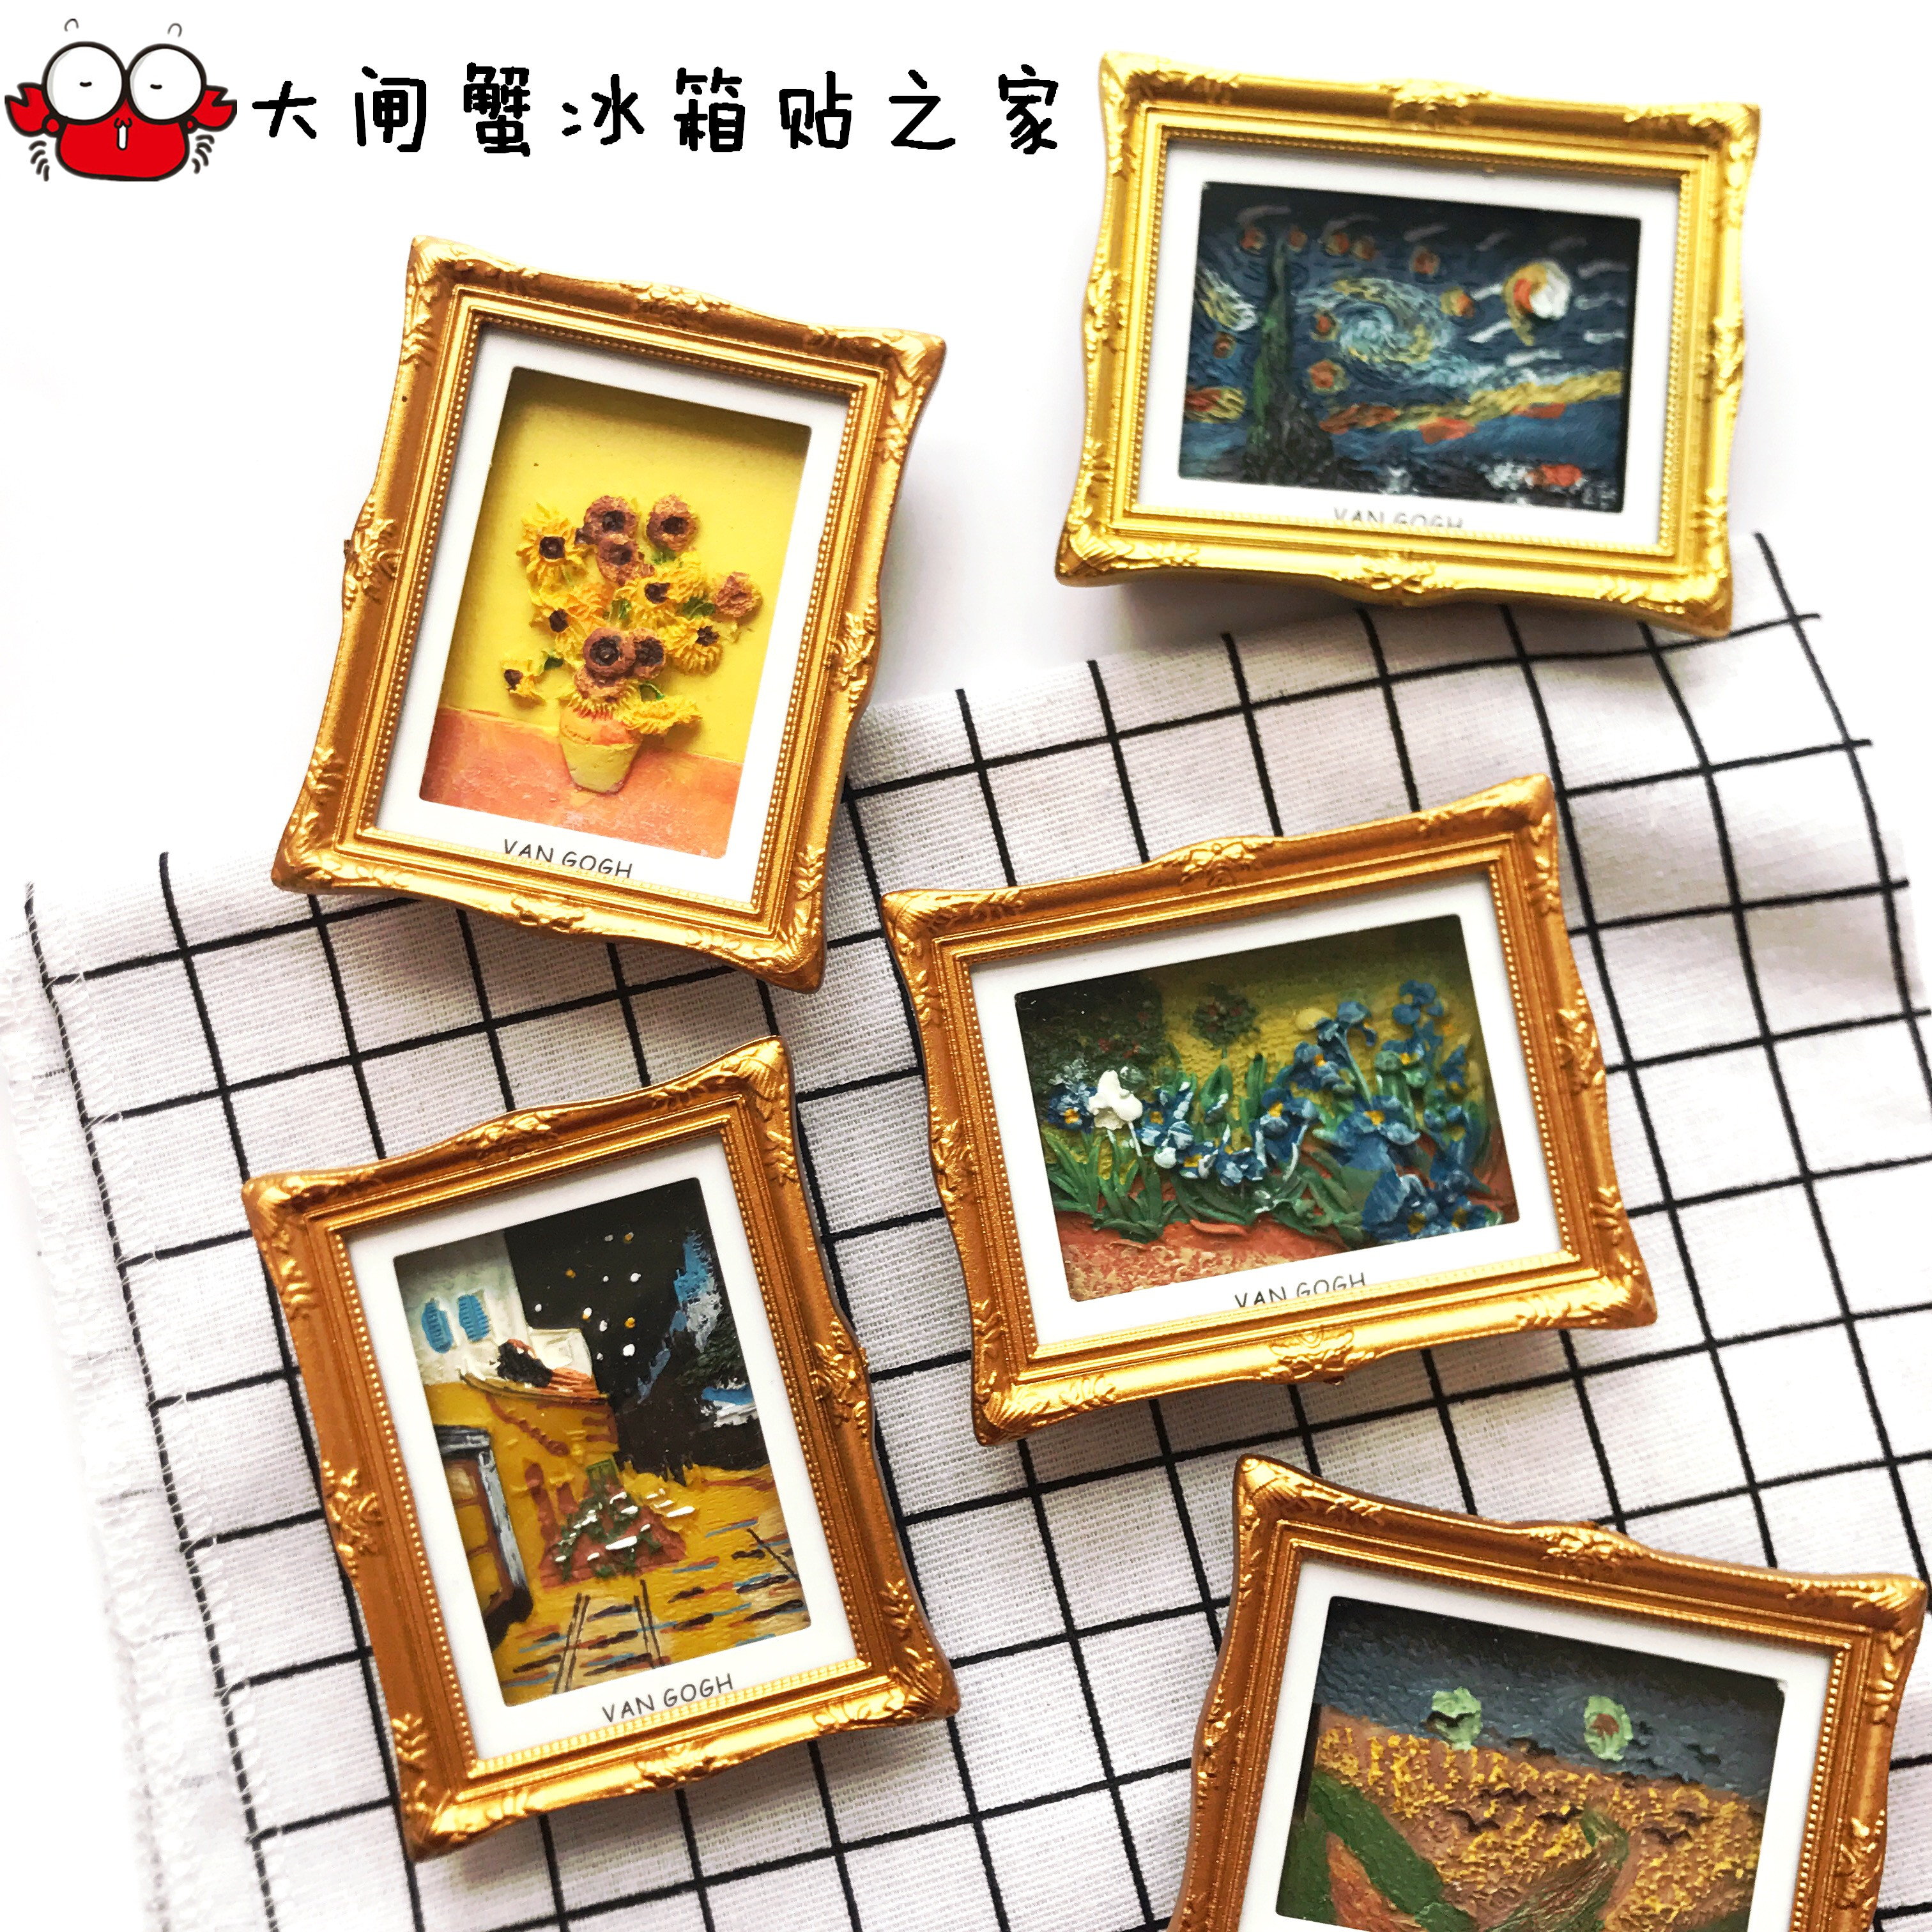 USD 7.81] Have you eaten hairy crabs Golden photo frame refrigerator ...